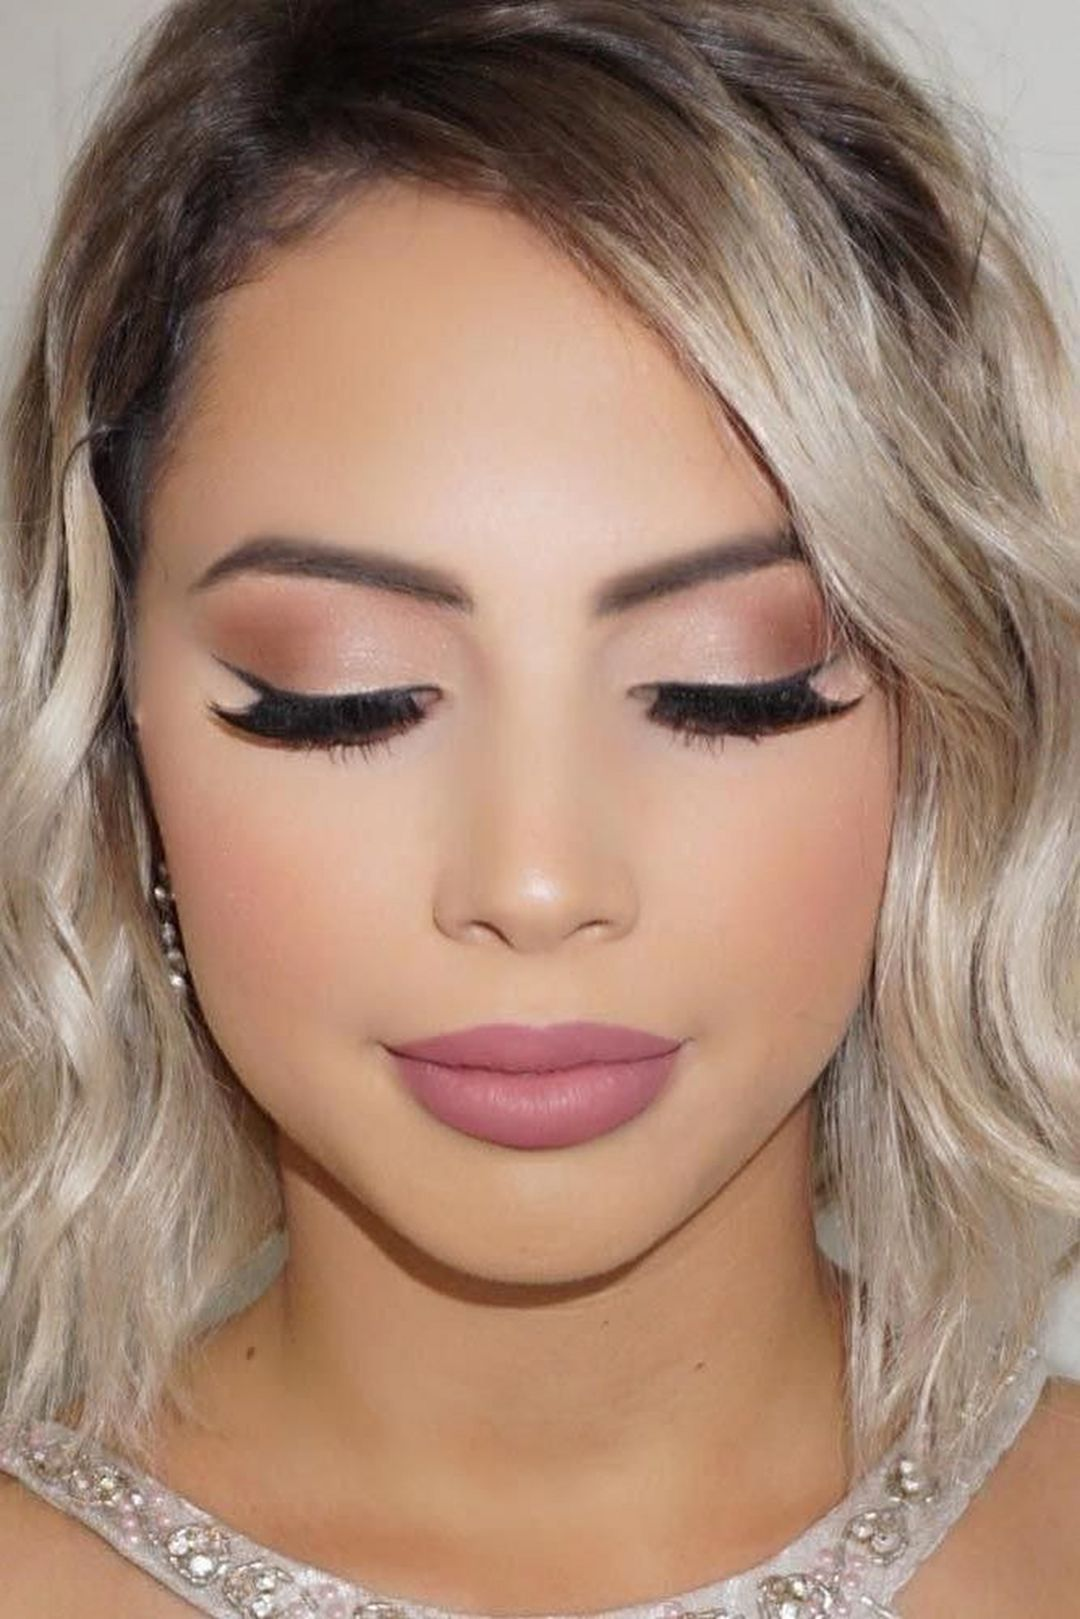 15 Simple And Memorable Makeup Ideas You Can Rely On For Parties - Fashions Nowadays